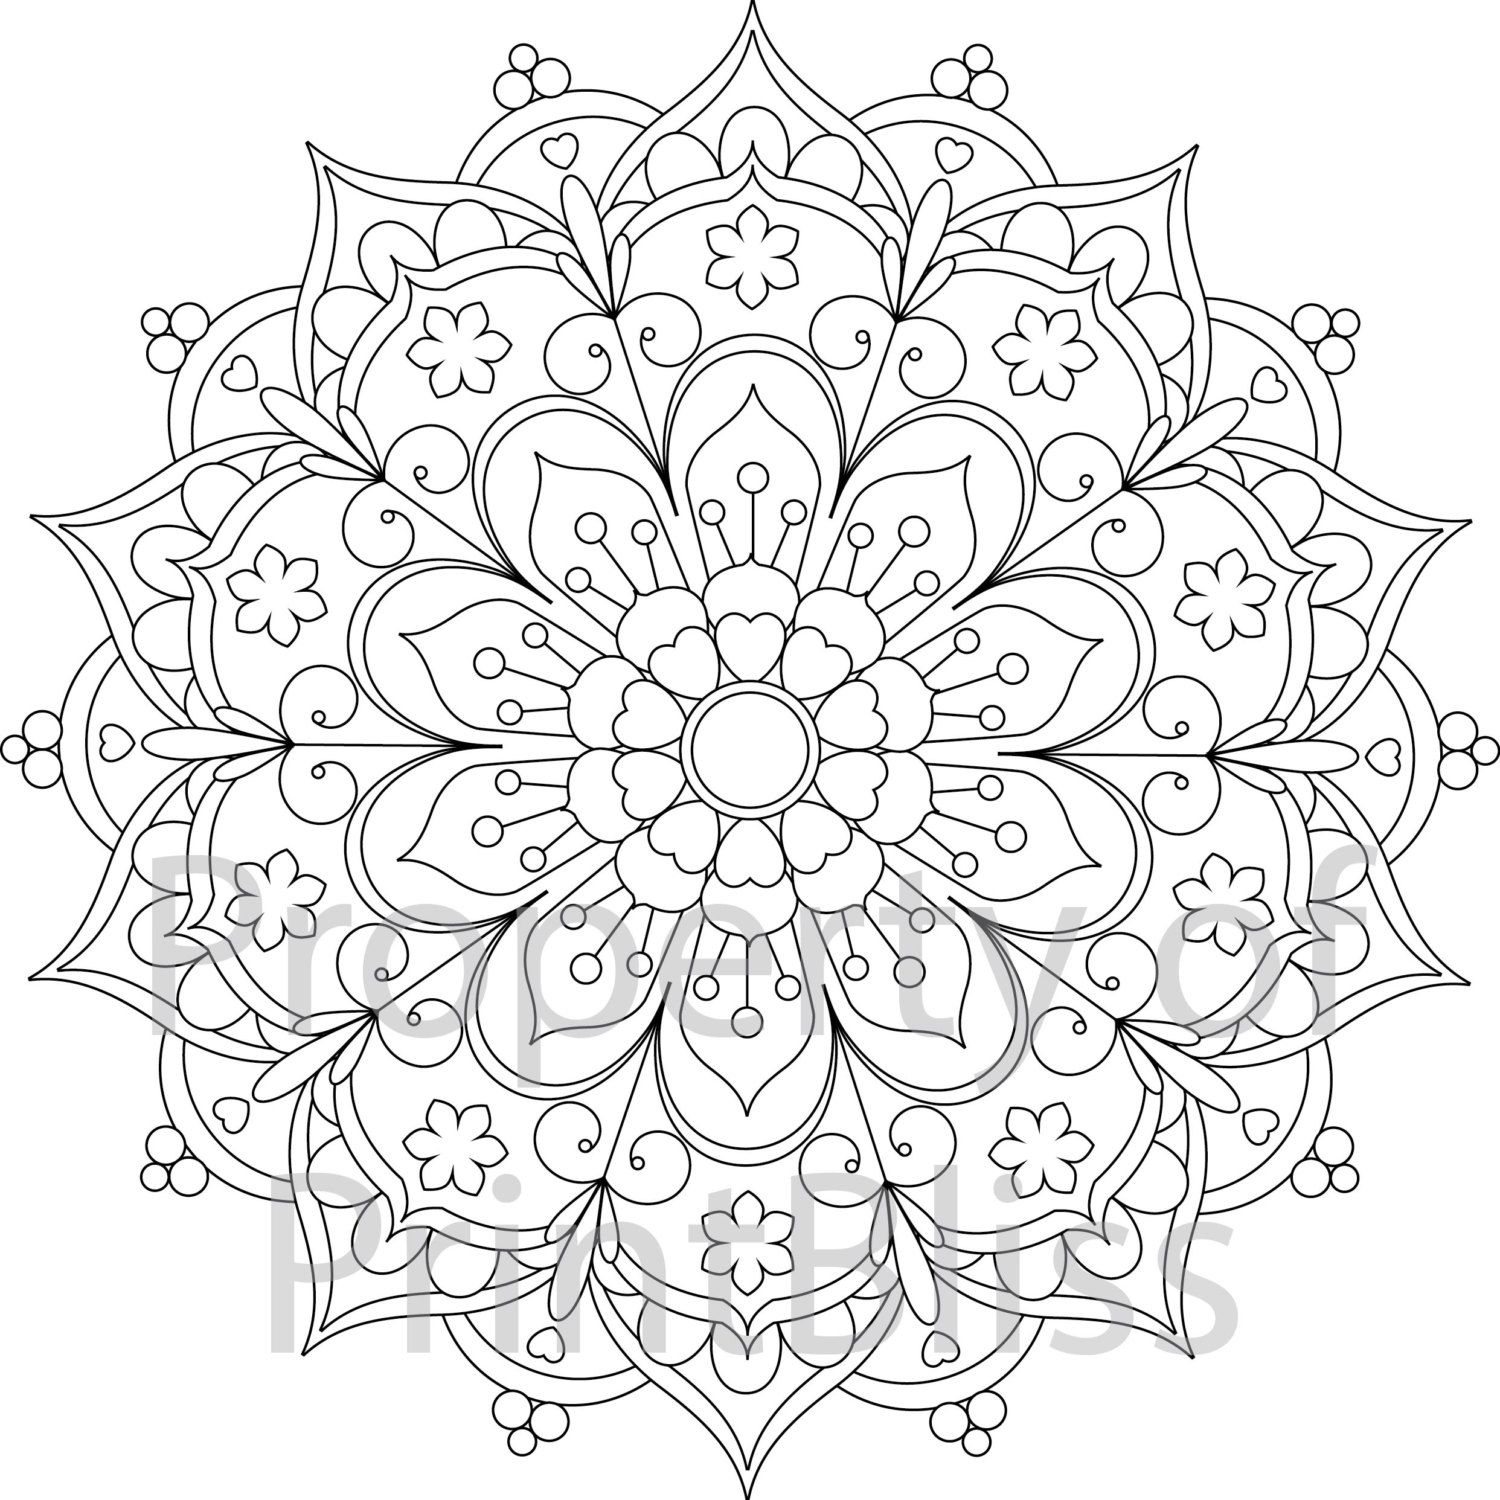 25. Flower Mandala printable coloring page. by PrintBliss